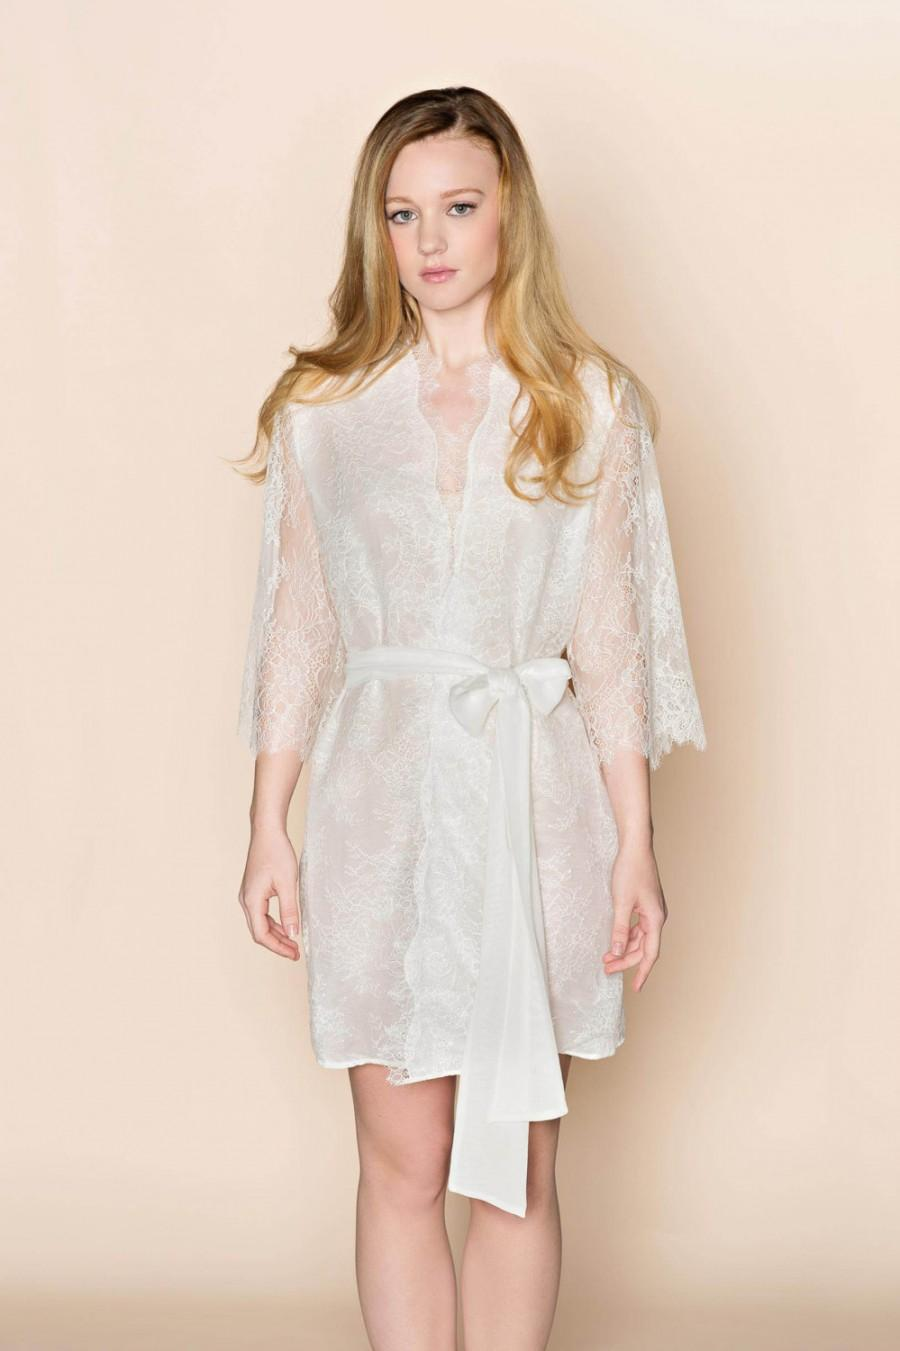 The Odette French Lace Silk Bridal Robe Getting Ready Kimono Lined In Off White